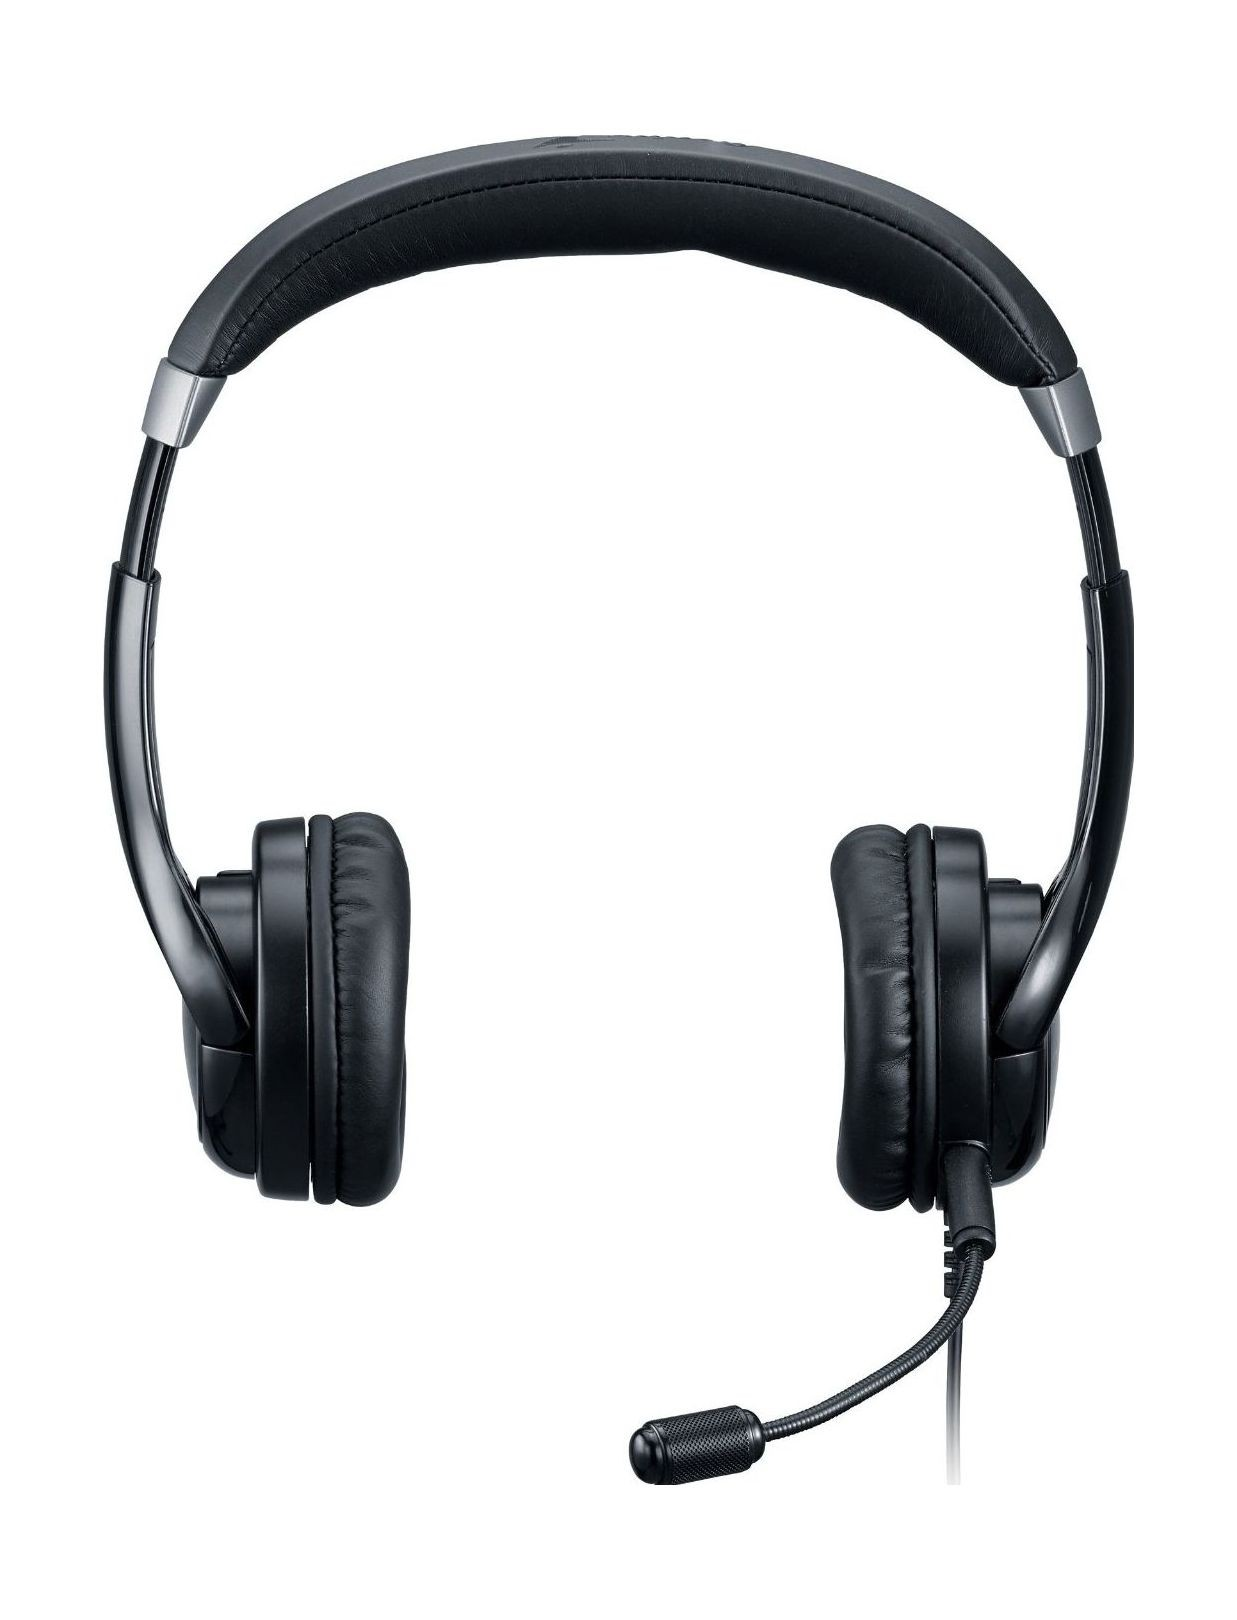 Genius HS-G450 Wired On-Ear Headphone with Mic - Black | Xcite ...